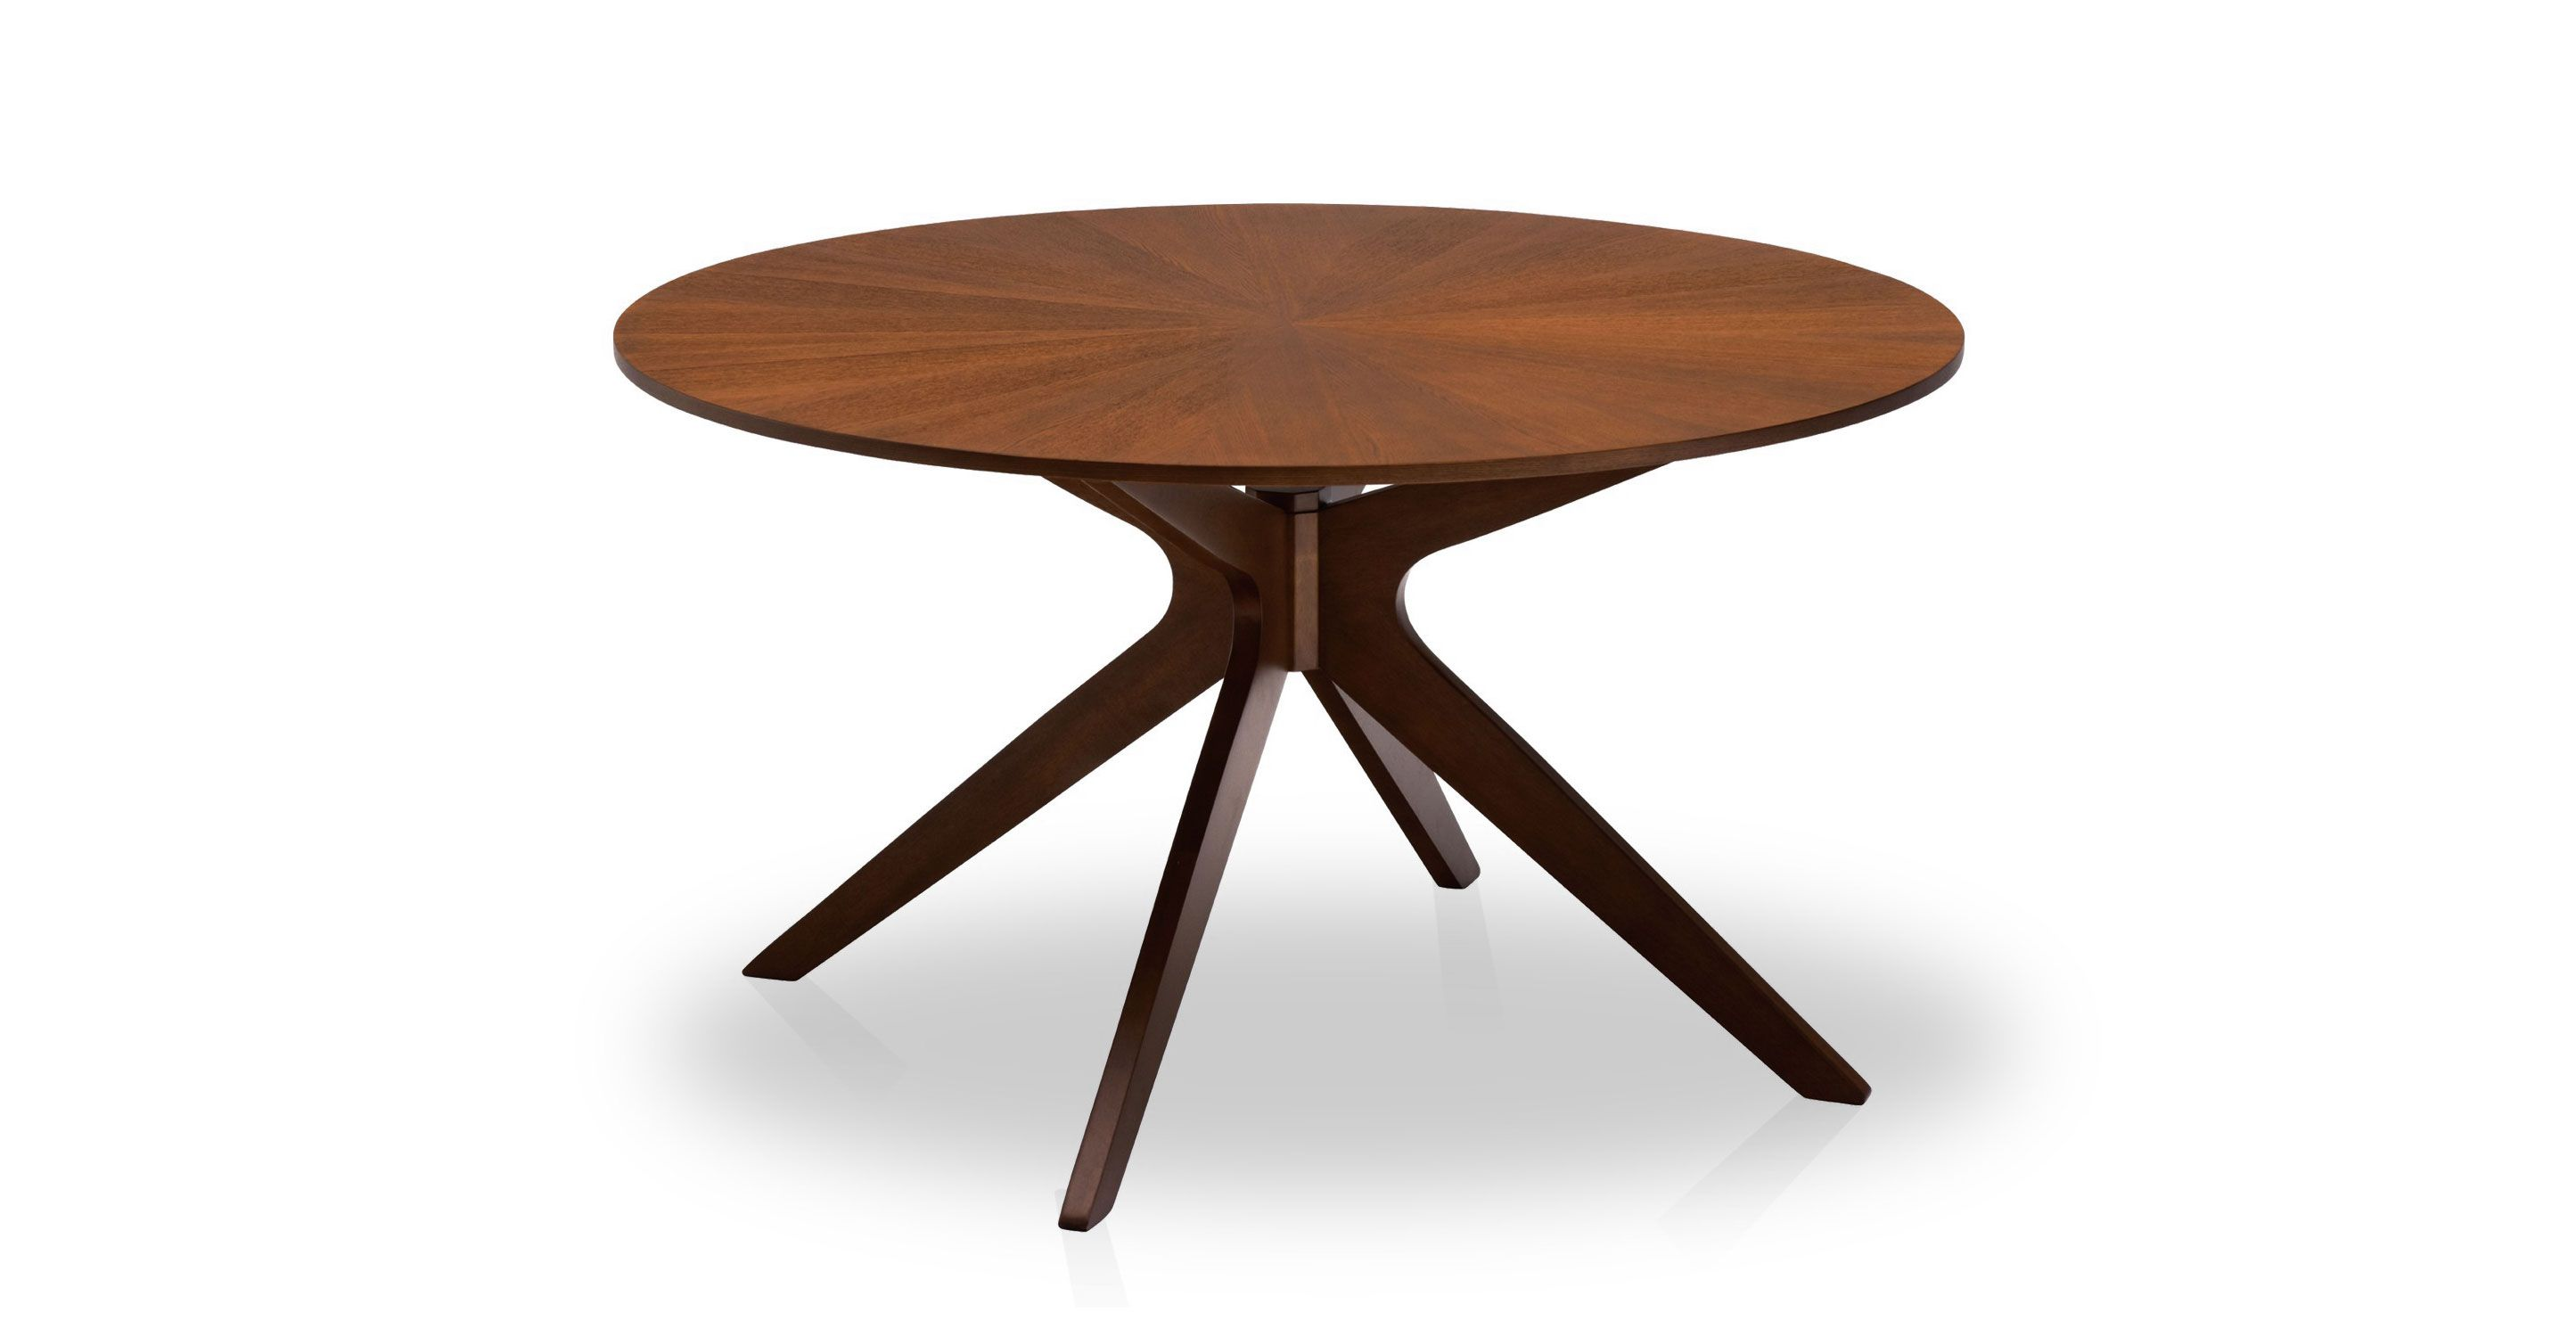 Modern round pedestal dining table - Round Dining Table 4 6 Person Walnut Finish Article Conan Modern Furniture